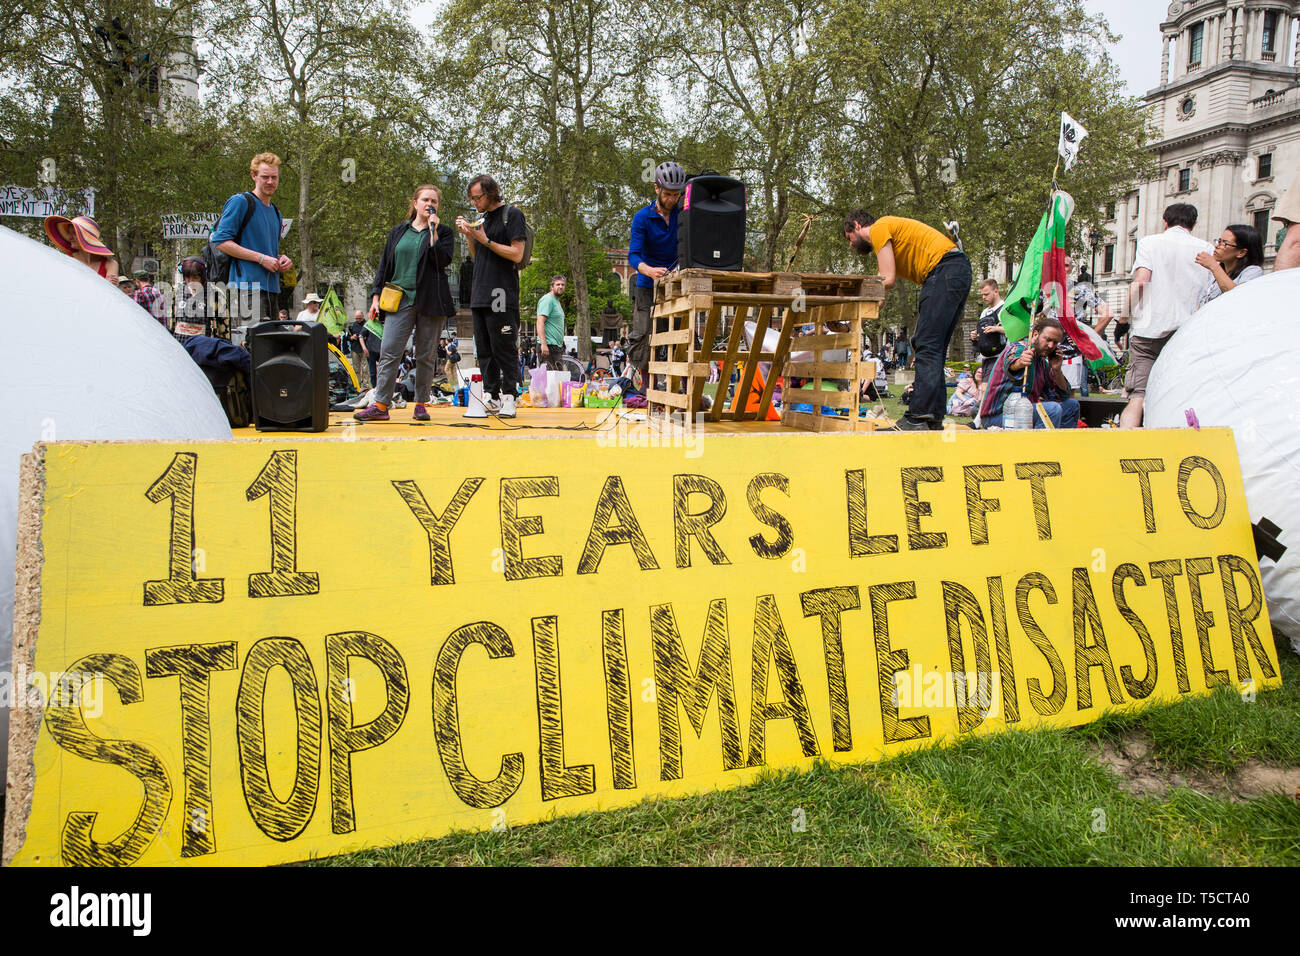 London, UK. 23rd April 2019. Climate change activists from Extinction Rebellion address an assembly in Parliament Square prior to the preparation of letters for delivery to their Members of Parliament. Credit: Mark Kerrison/Alamy Live News - Stock Image